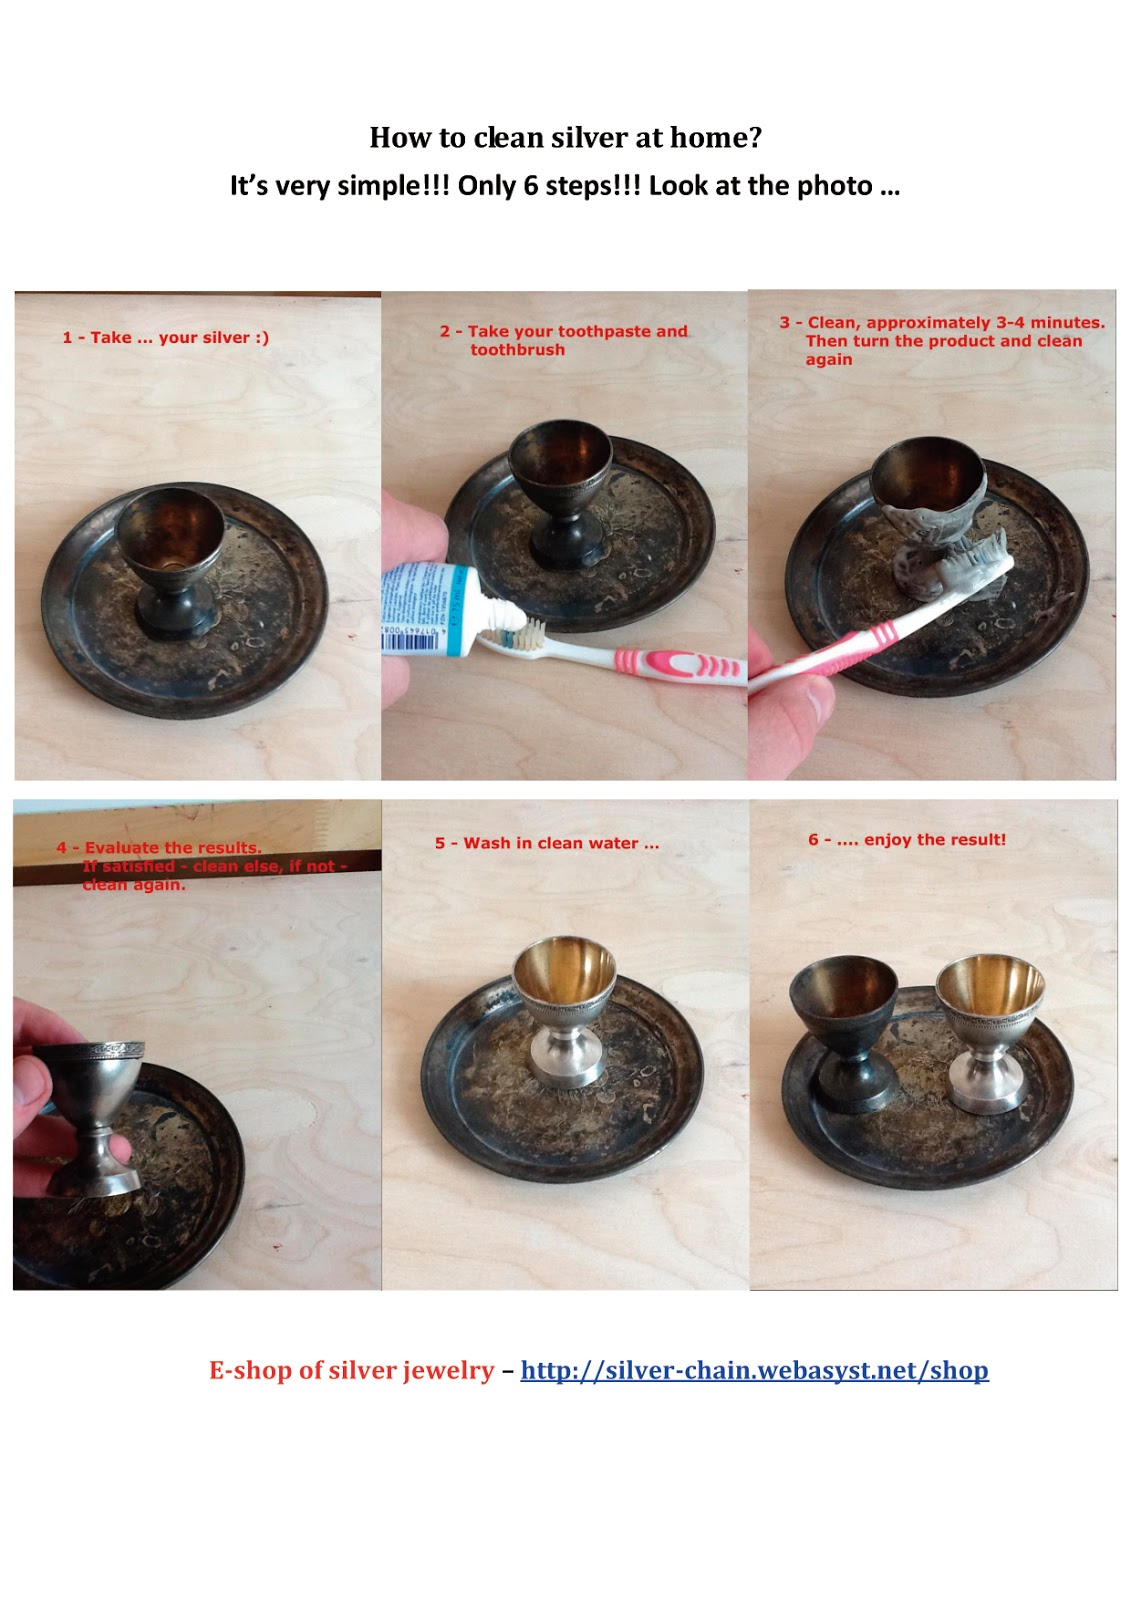 Cleaning Silver Silverware At Home Photo Instructions